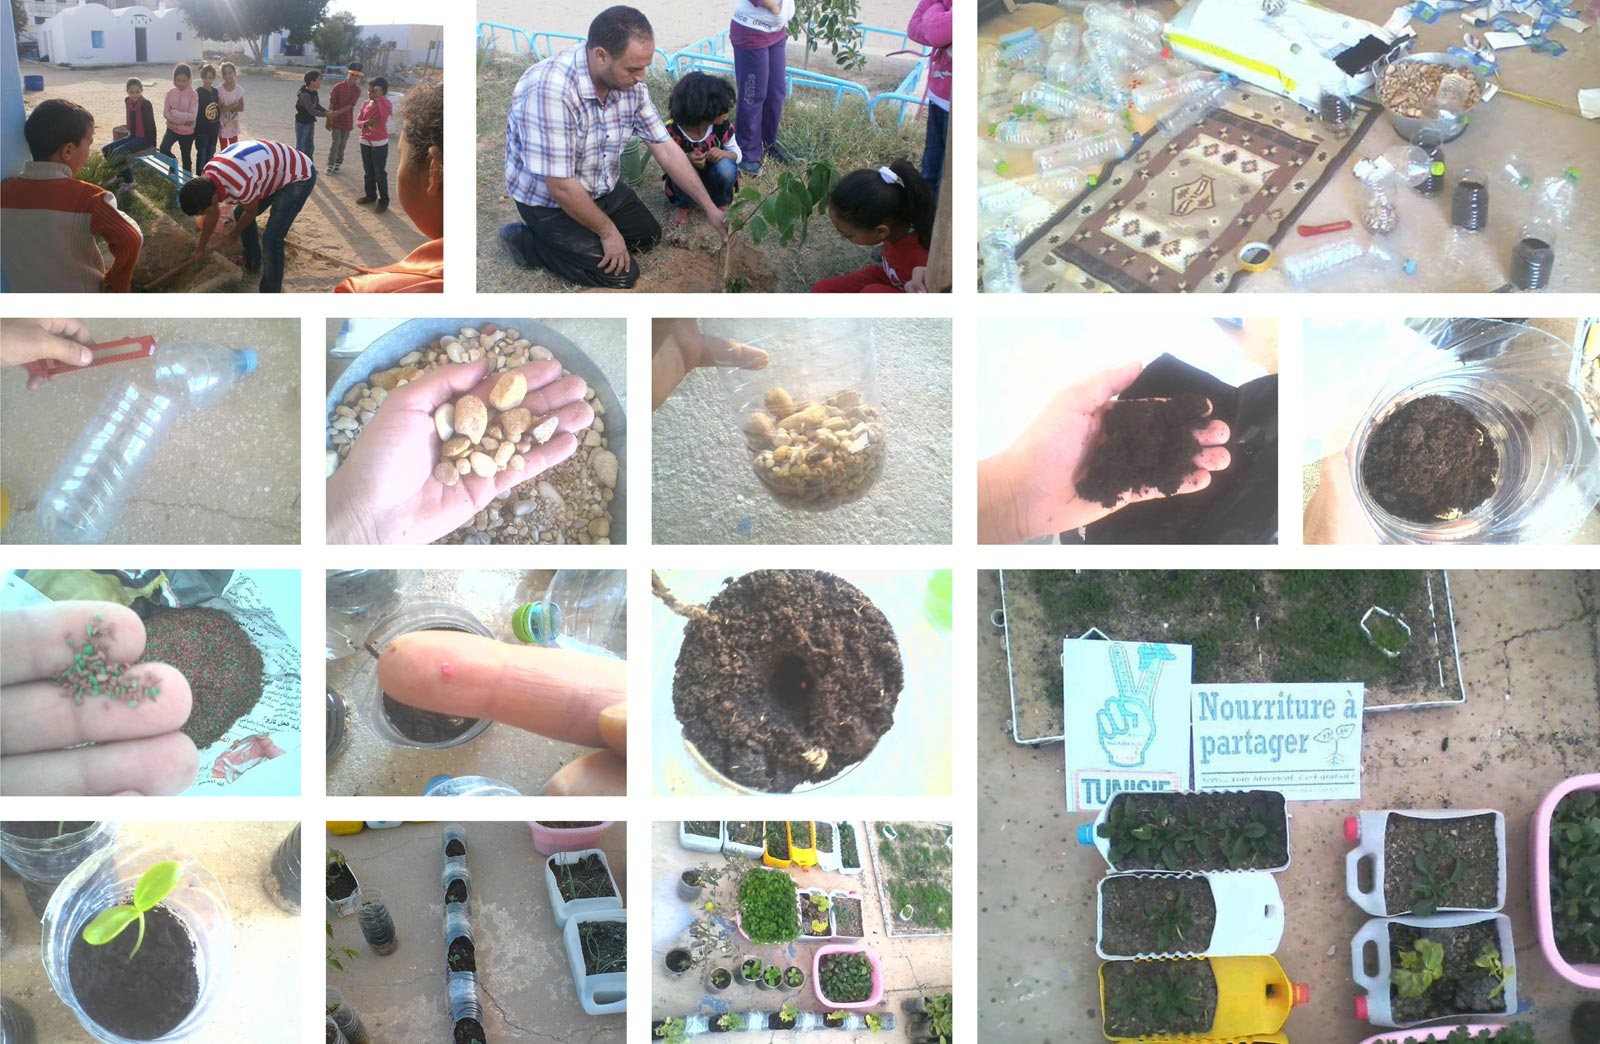 c636_incredible_edible_todmorden_tunisie_gafsa_agriculture_urbaine_incroyables_comestibles_w1600